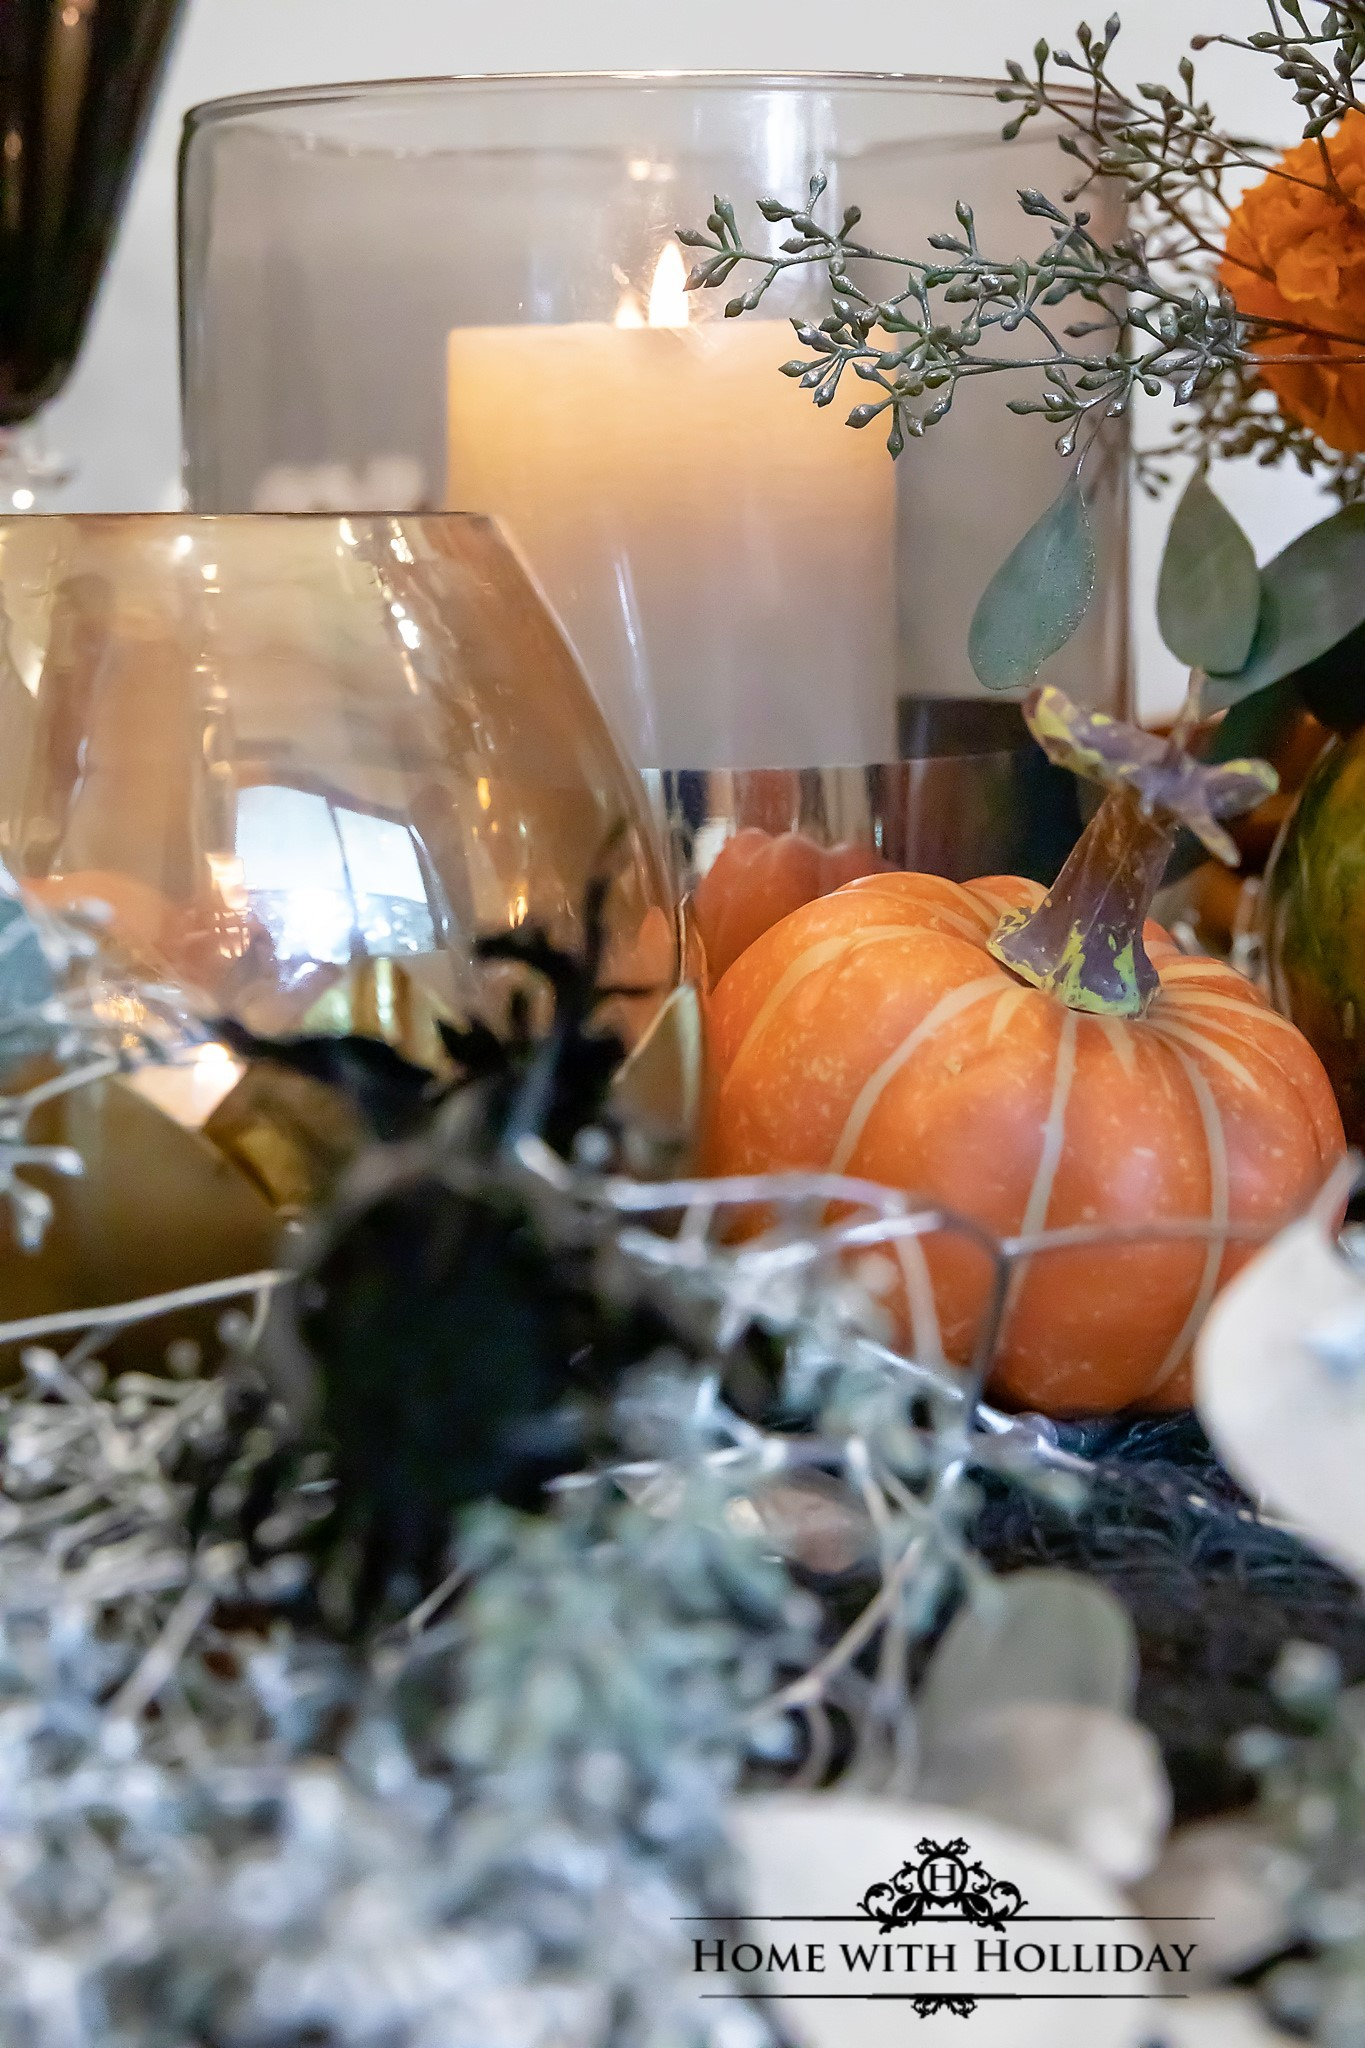 Elegant Halloween Table Setting with Pumpkins - Home with Holliday